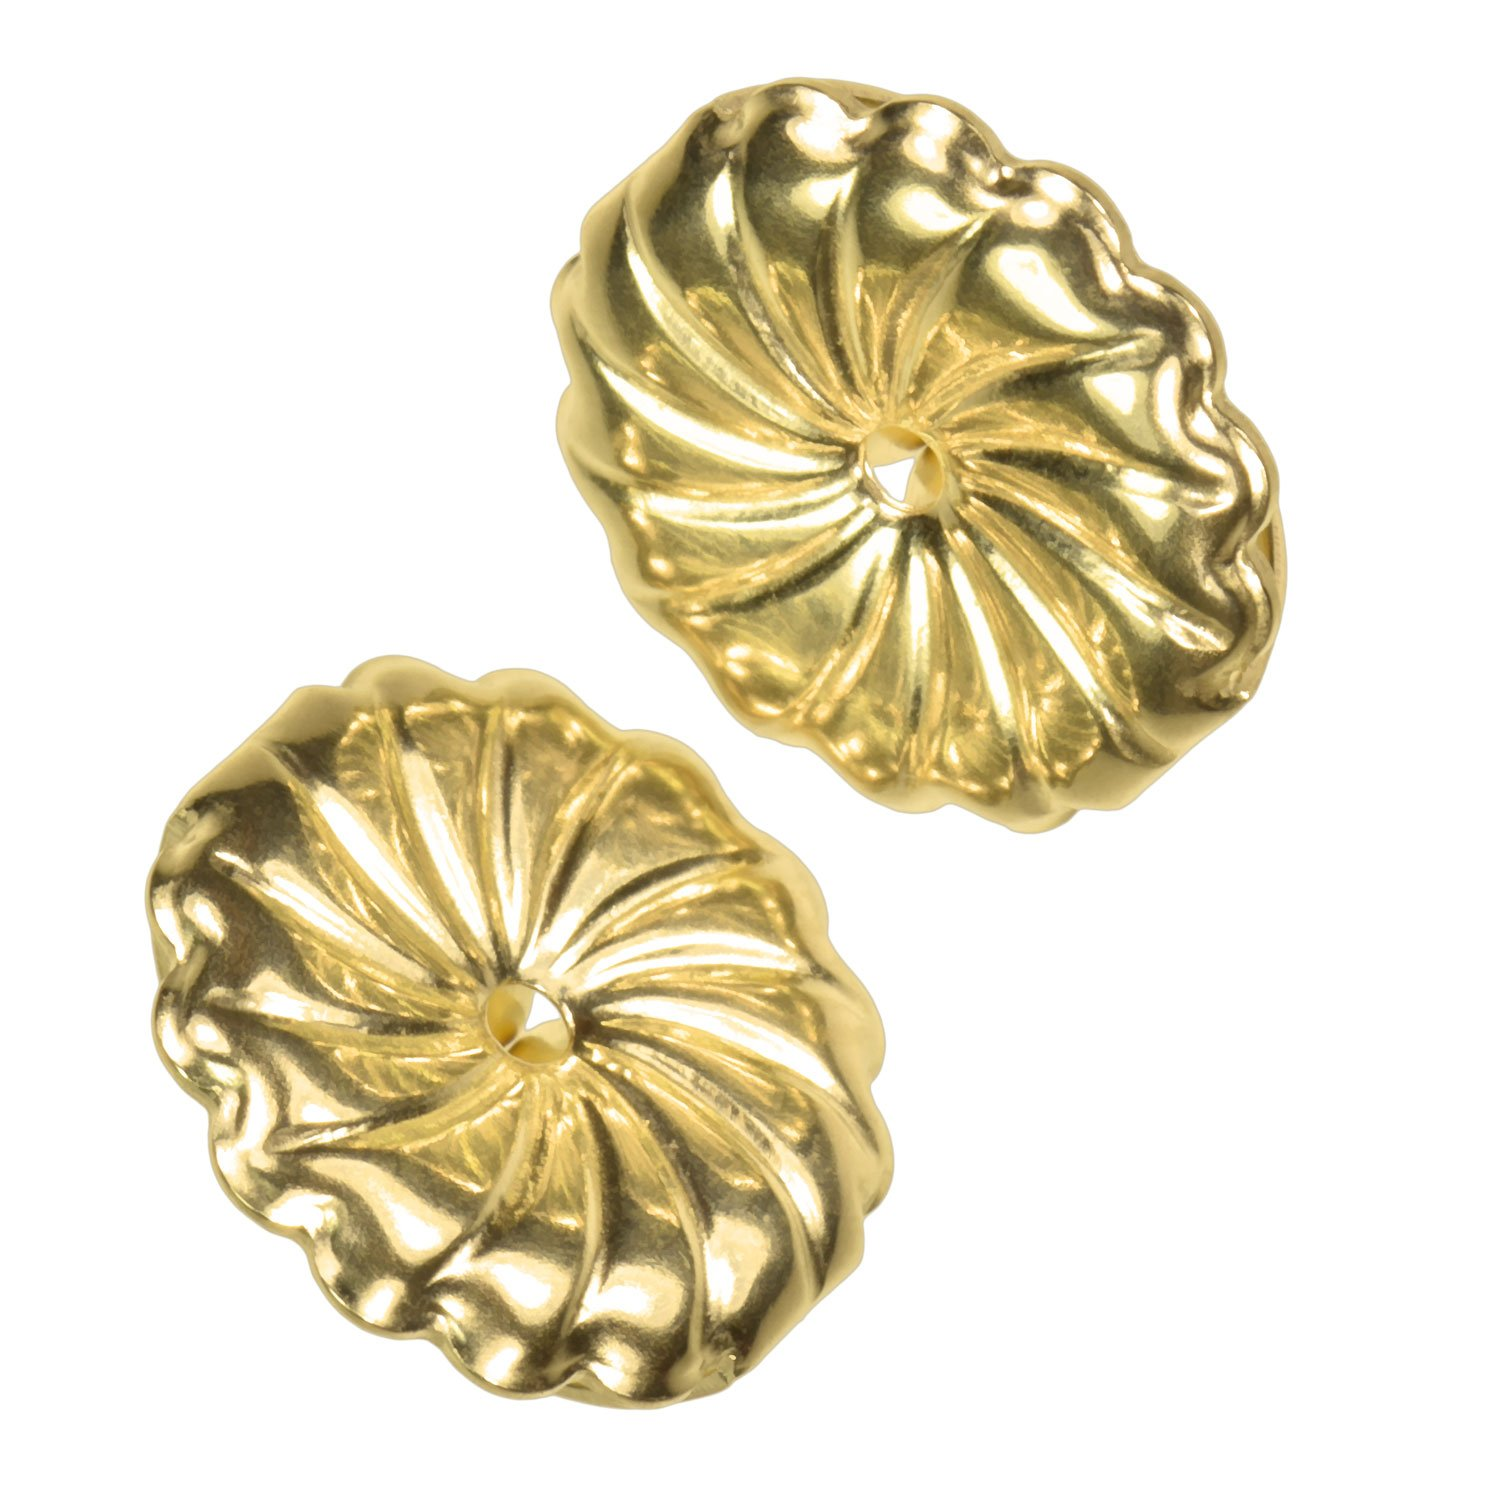 uGems 14K Solid Gold 9.5mm Spiral Swirl Circle Earring Backs for 0.030-0.035'' Post 1 Pair by uGems (Image #4)